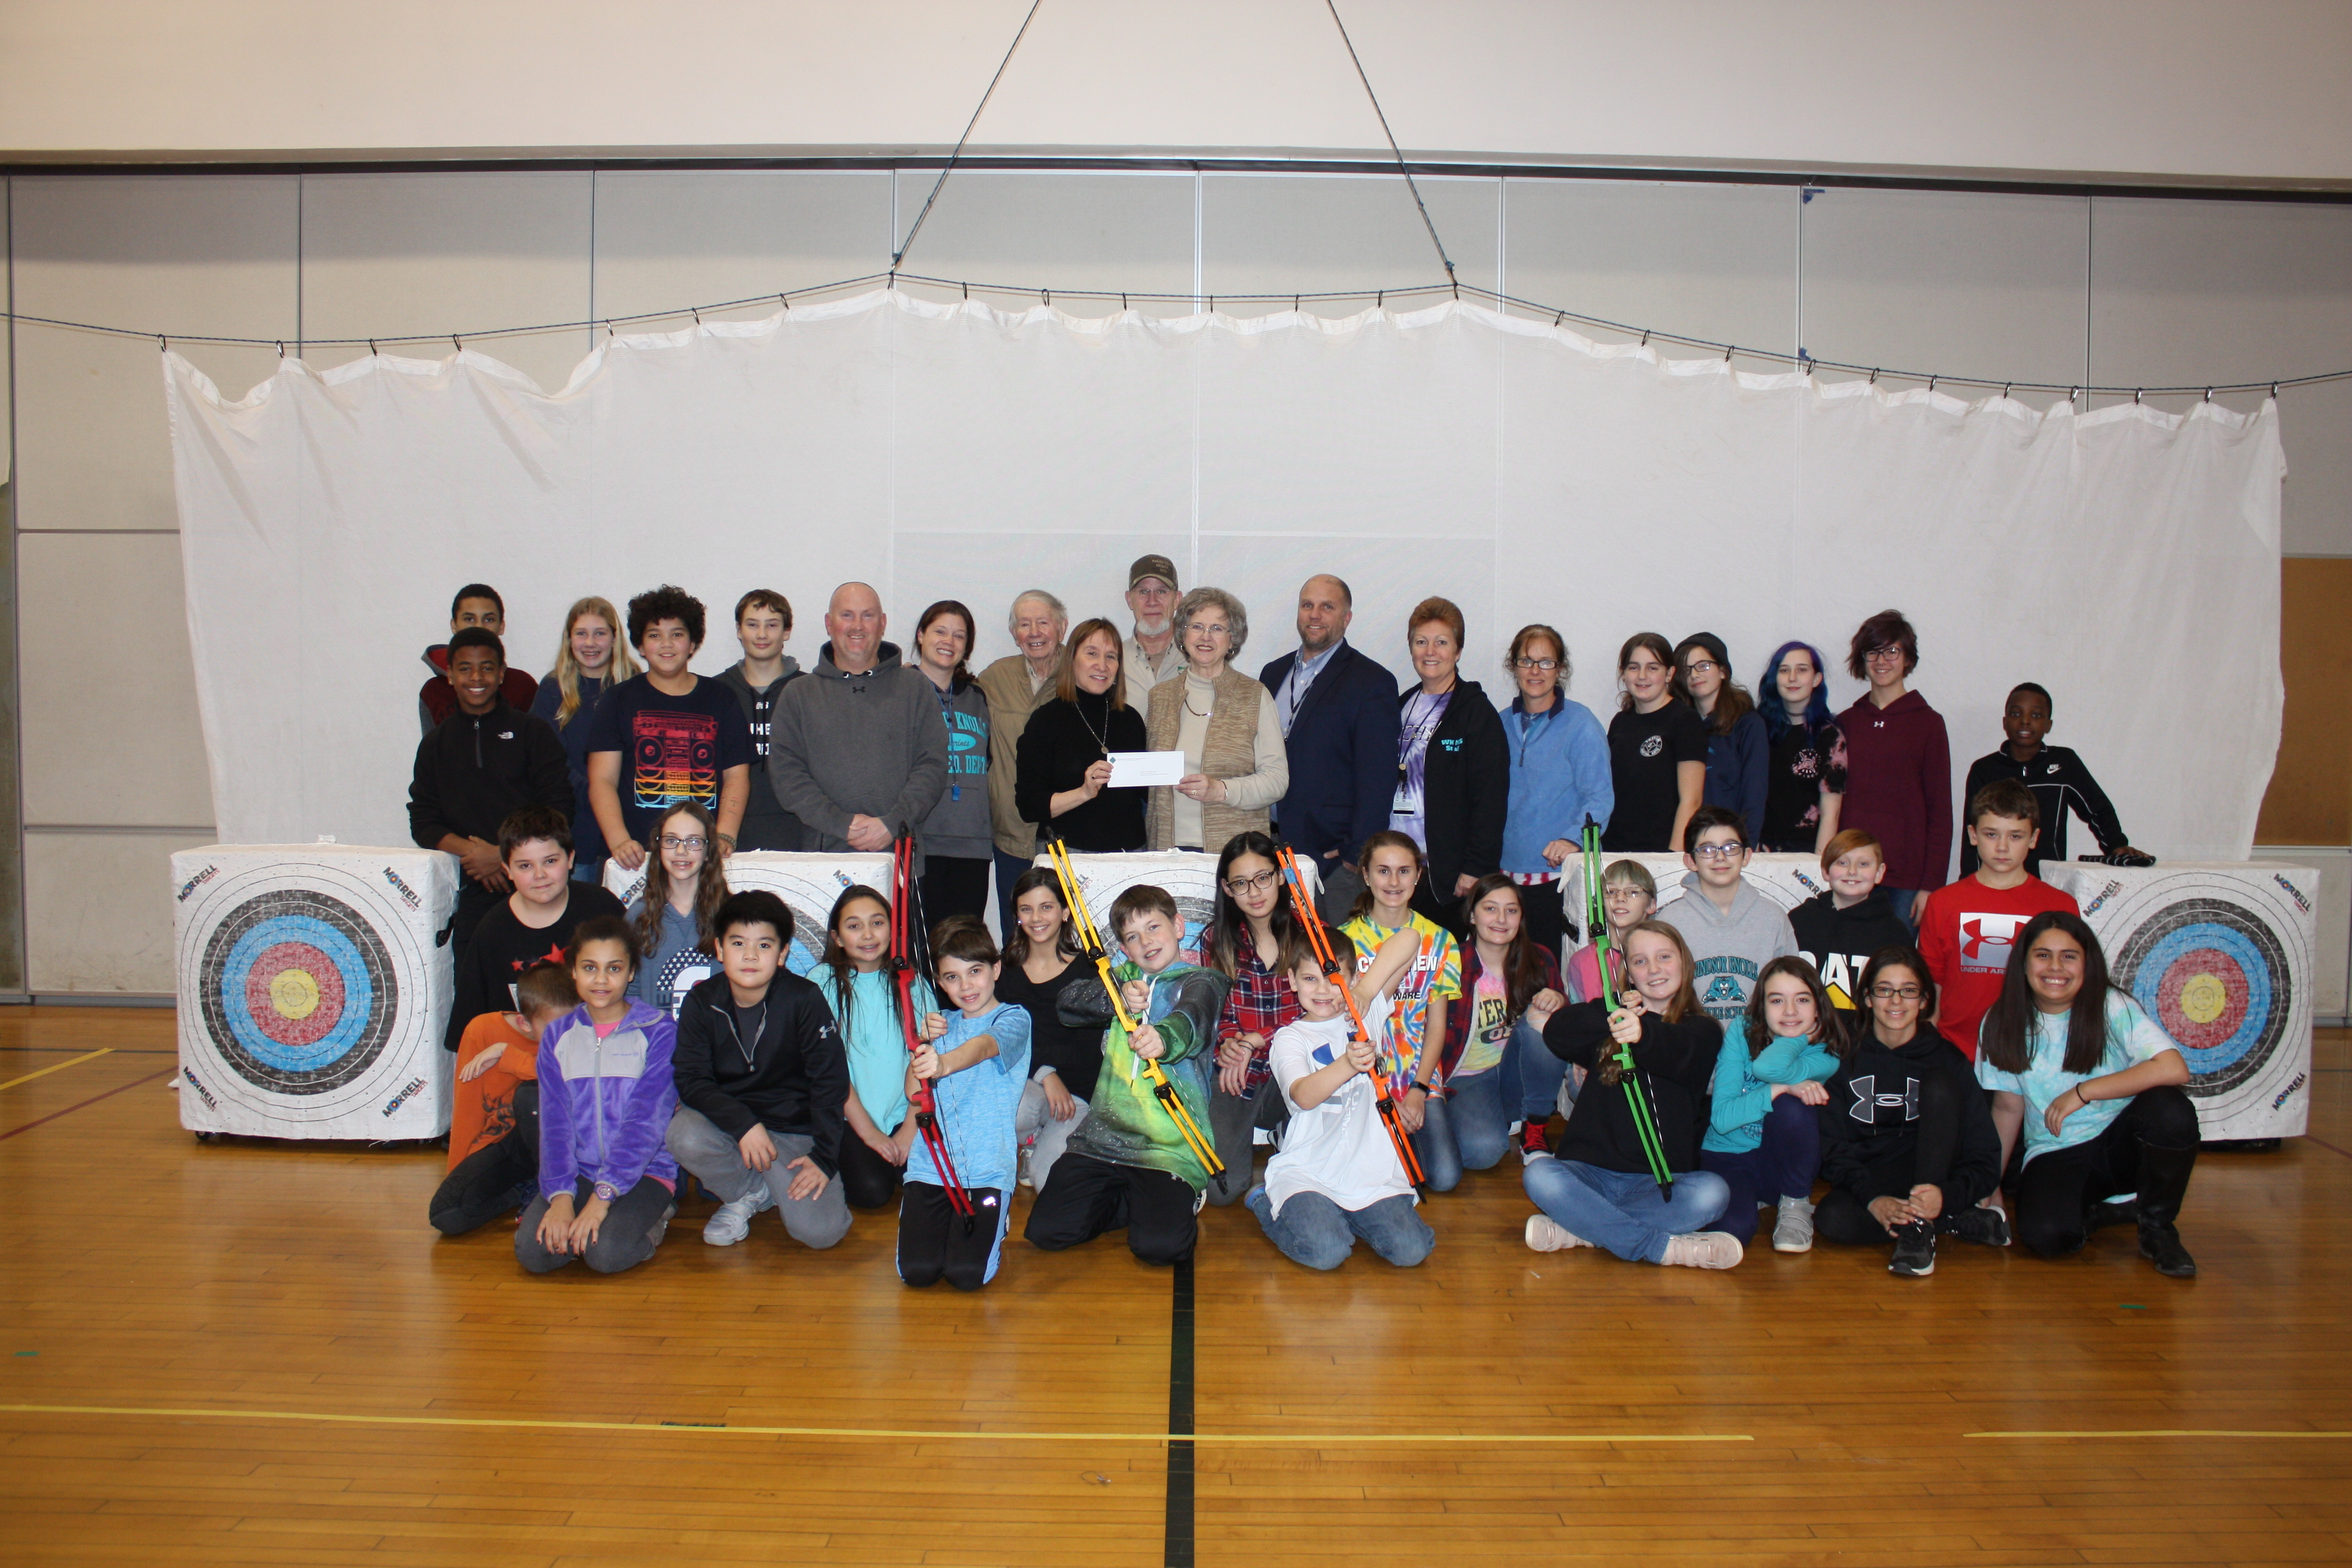 Growing Archery Program at Windsor Knolls Middle School Receives Grant Support